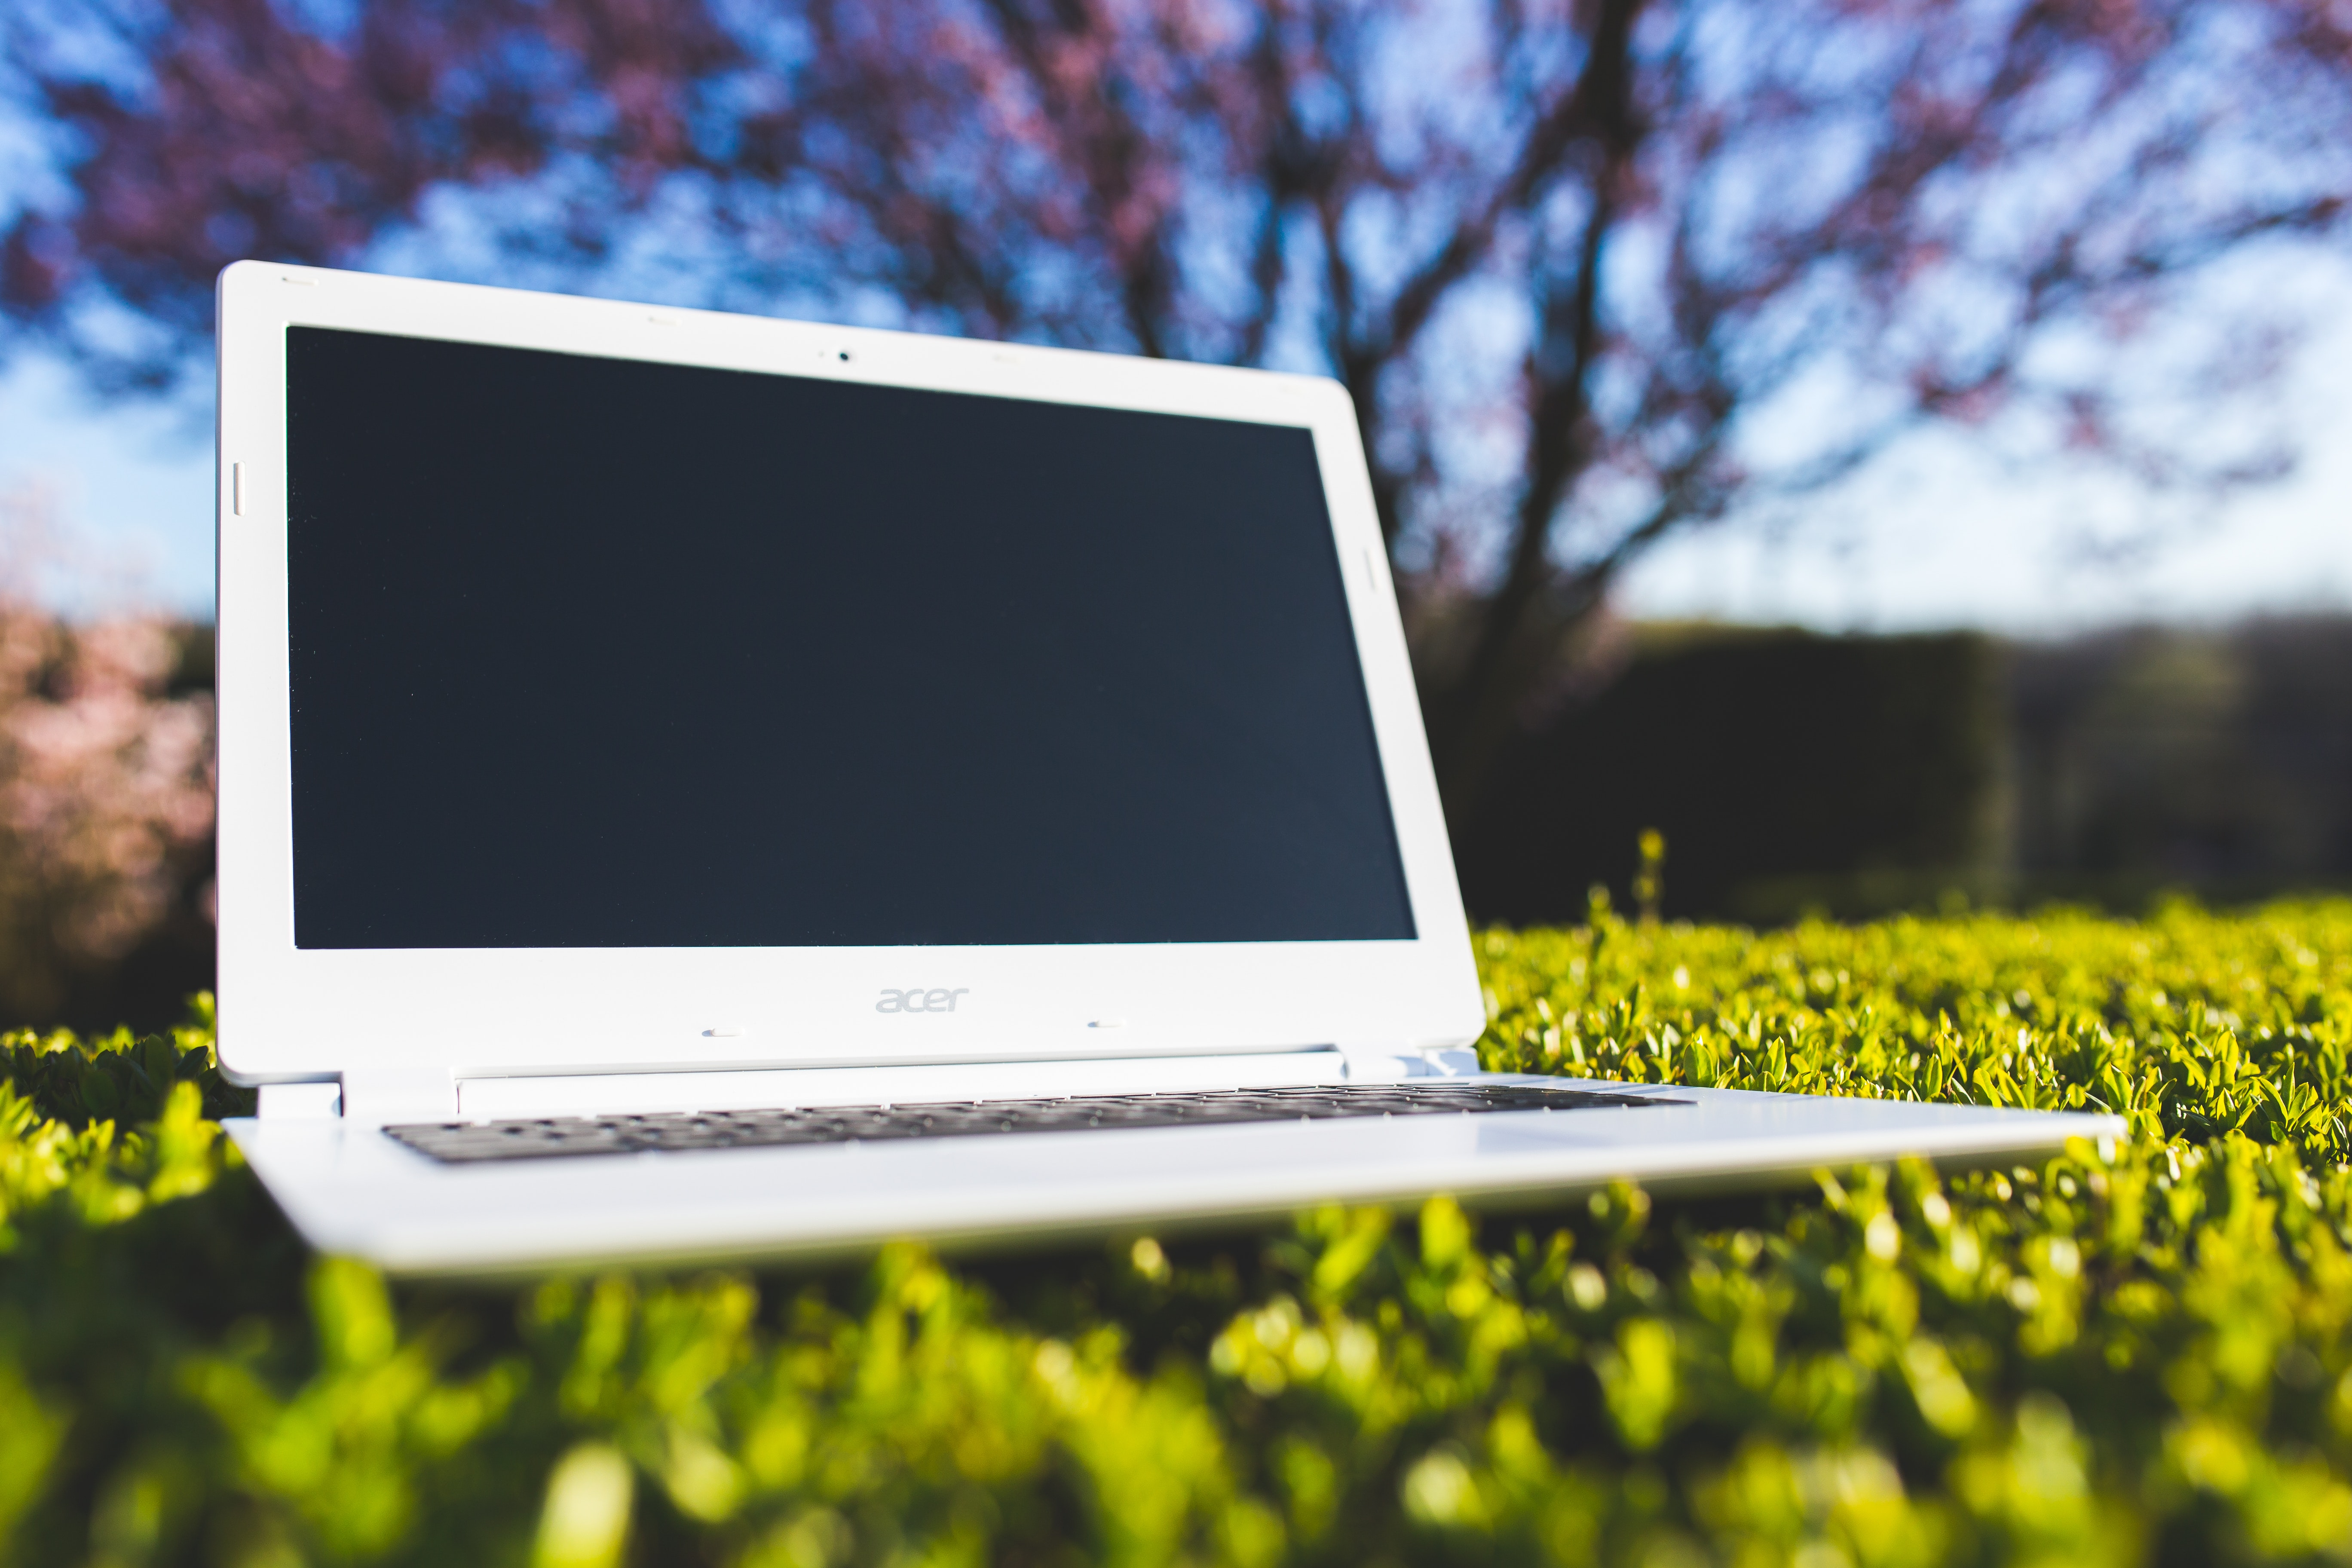 Image of a Chromebook on a sunny day. Are they good laptops for students?